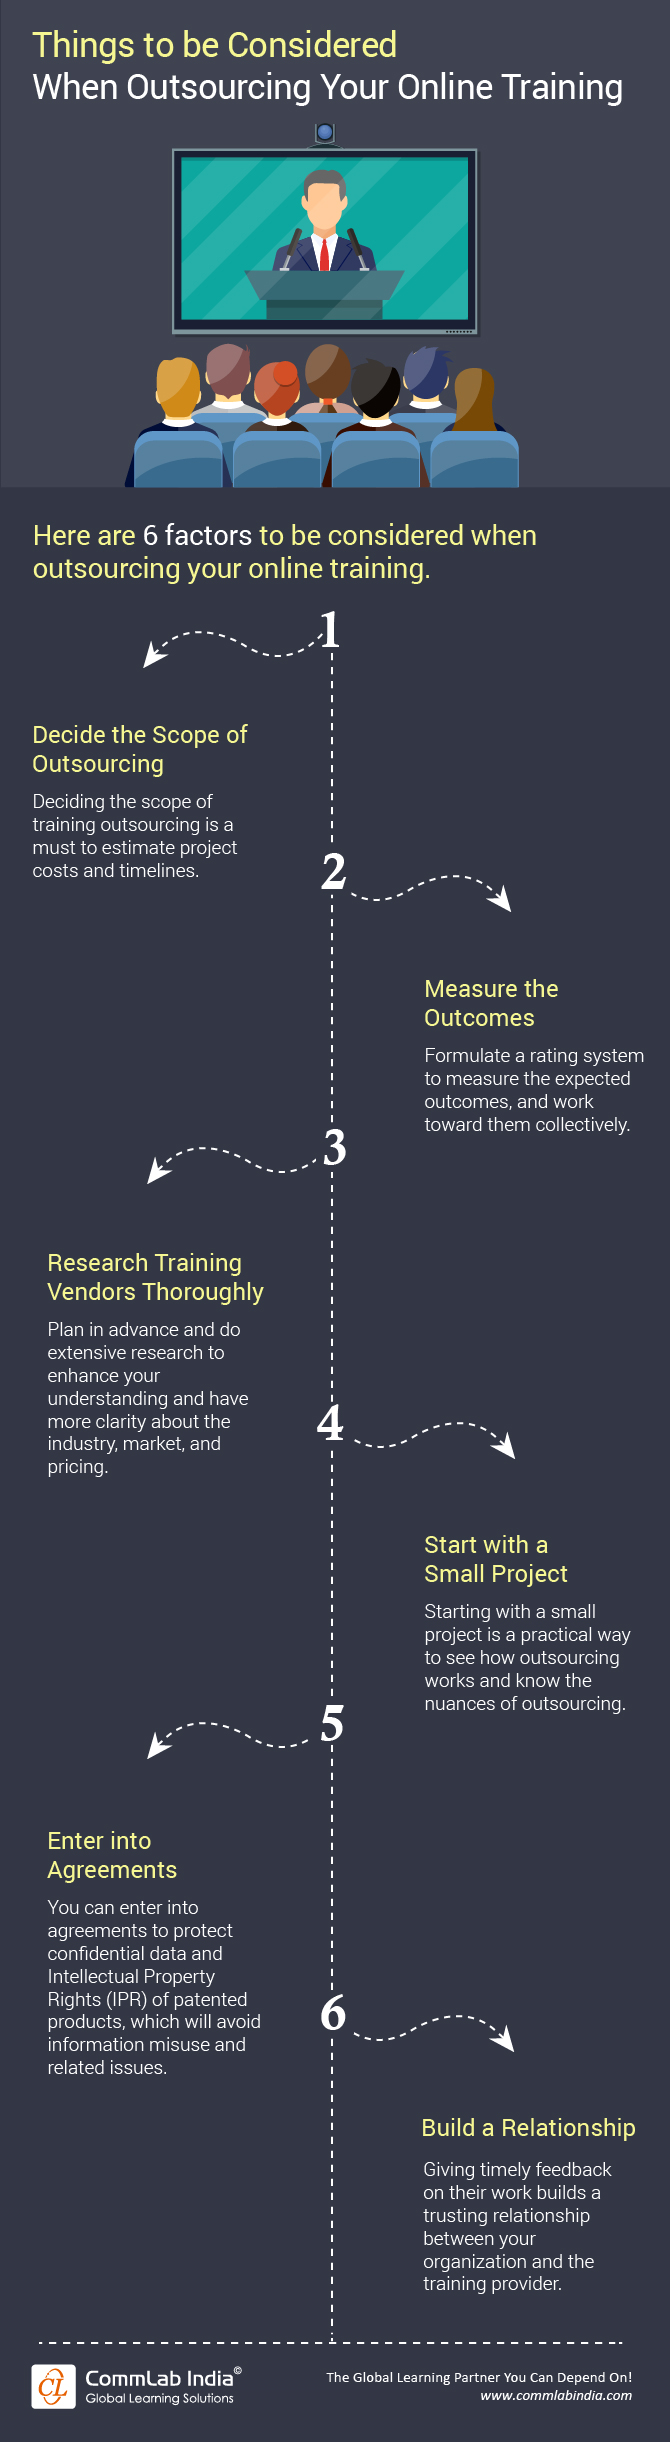 Things to Consider When Outsourcing Your Online Training [Infographic]